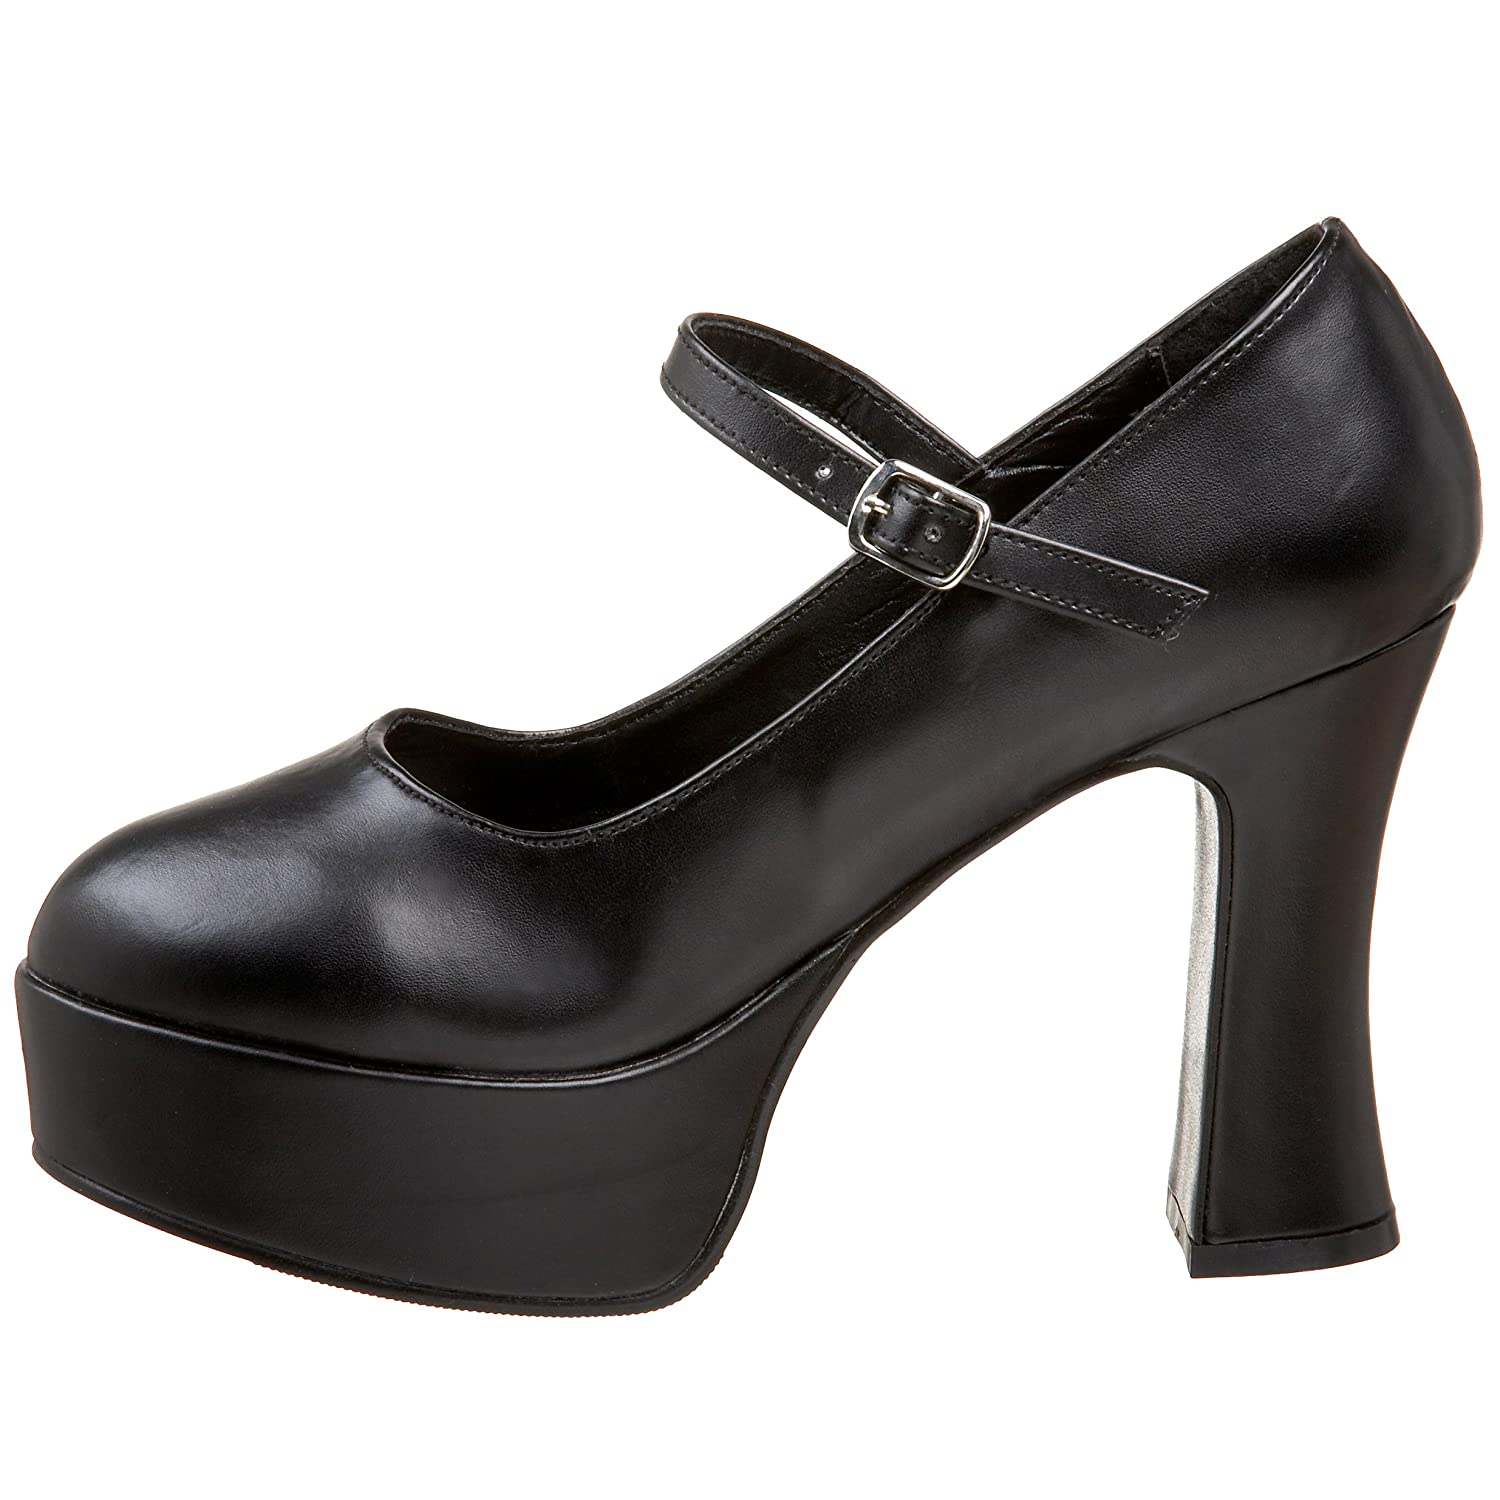 Funtasma MARYJANE-50 Plateau Damen Retro Plateau MARYJANE-50 Pumps Schwarz (Black) 87e89d